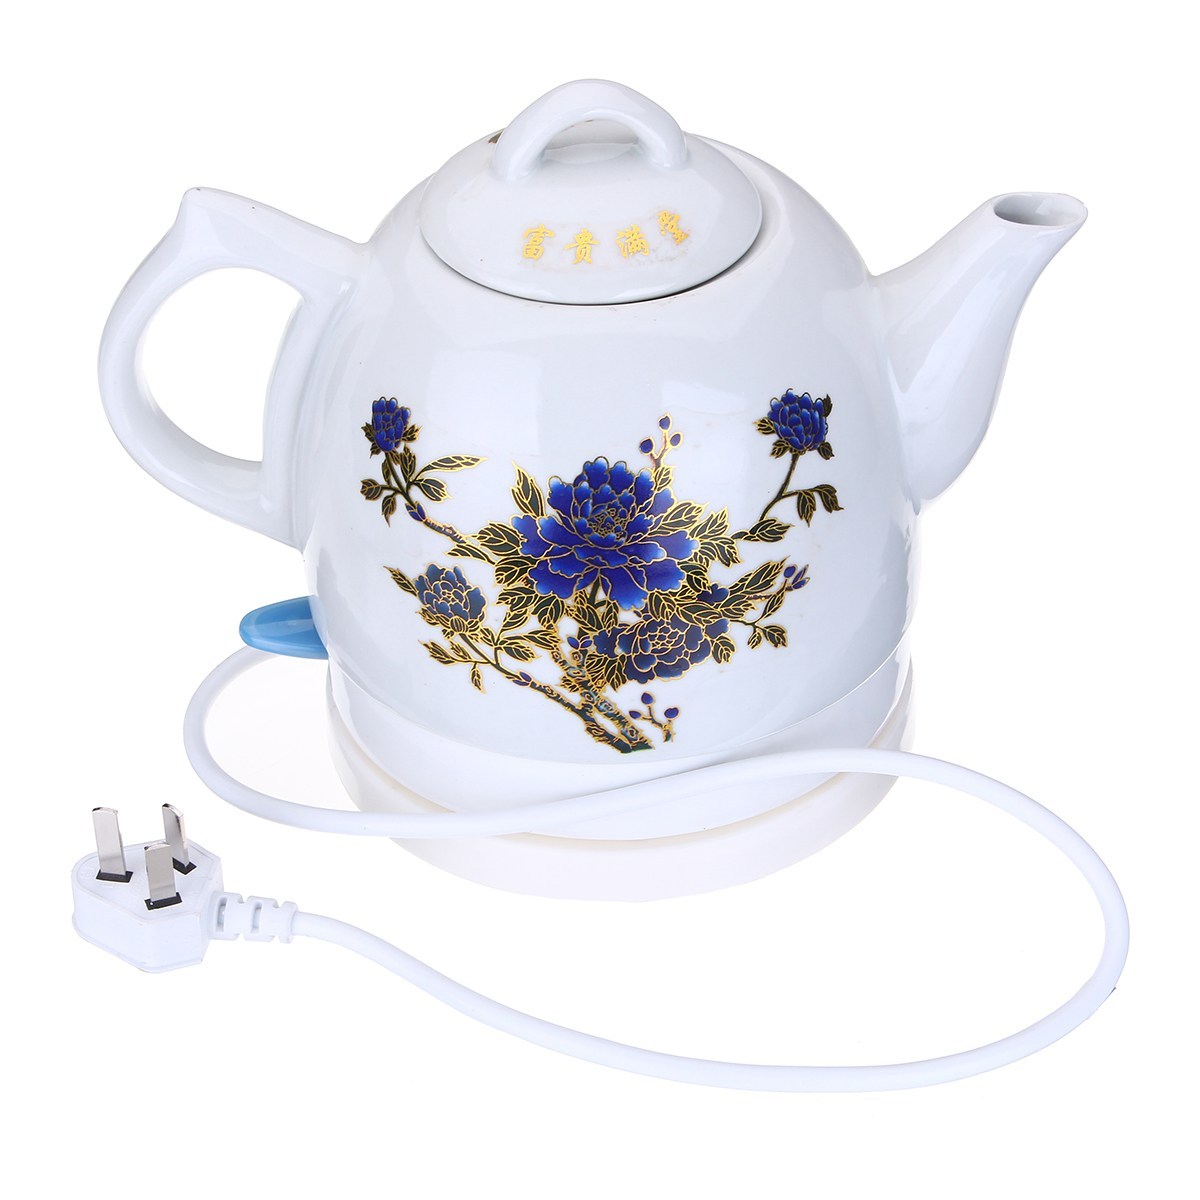 1l Ceramic Electric Color Change Teapot Kettle Jug Fast Boil Warming Tea Pot Teaware Gifts Home Office Tools Drinkware In Teapots From Garden On